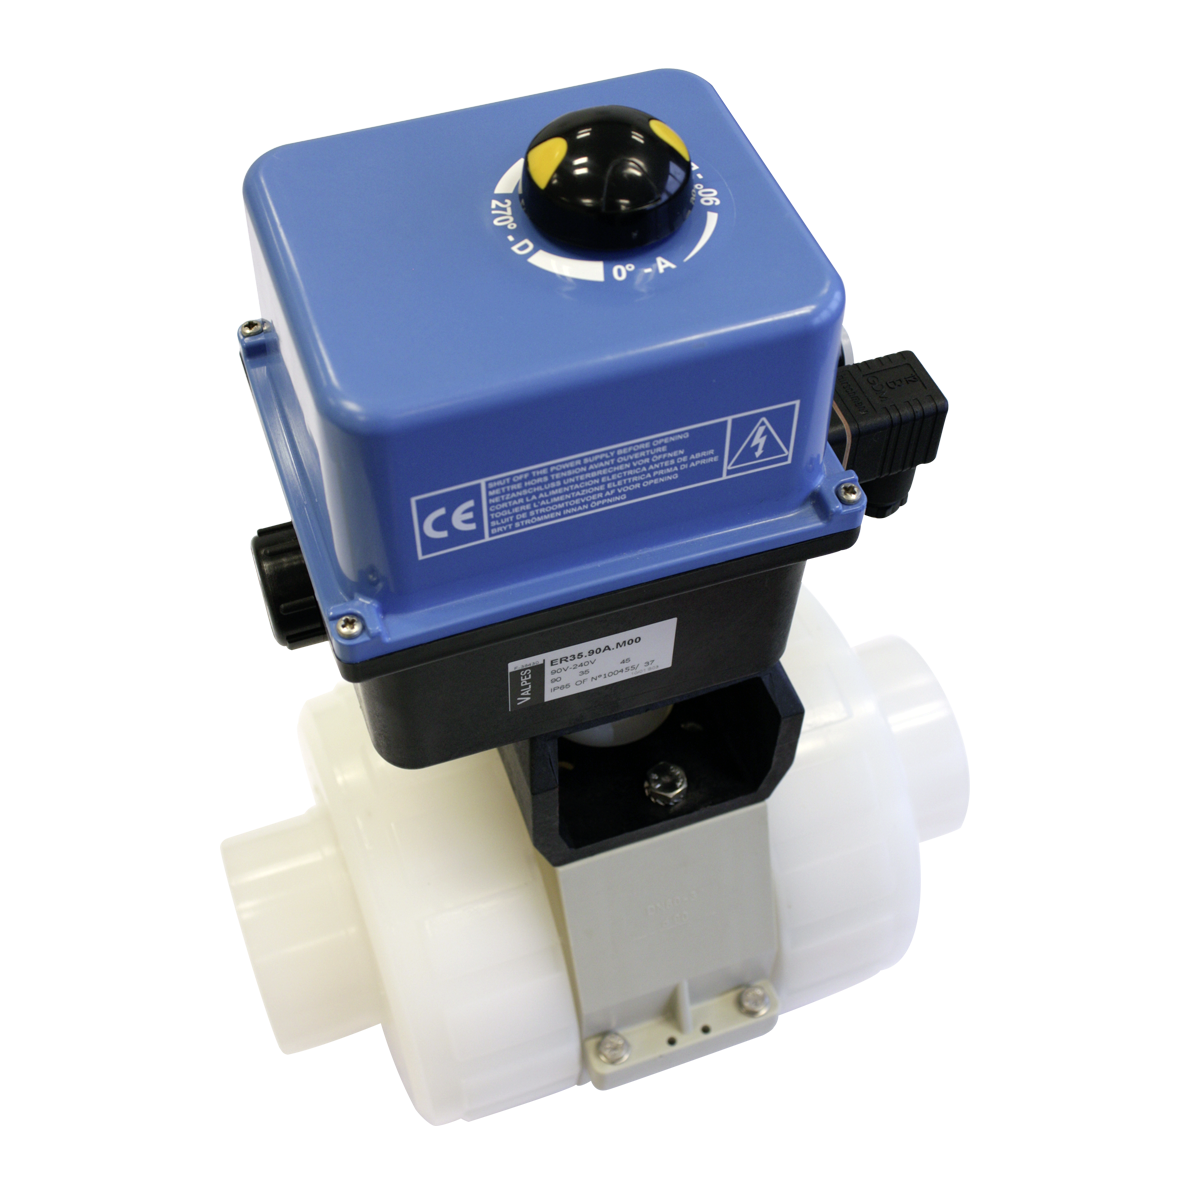 Praher 2-way ball valve S4 PVDF with Valpes actuator, white, black, blue